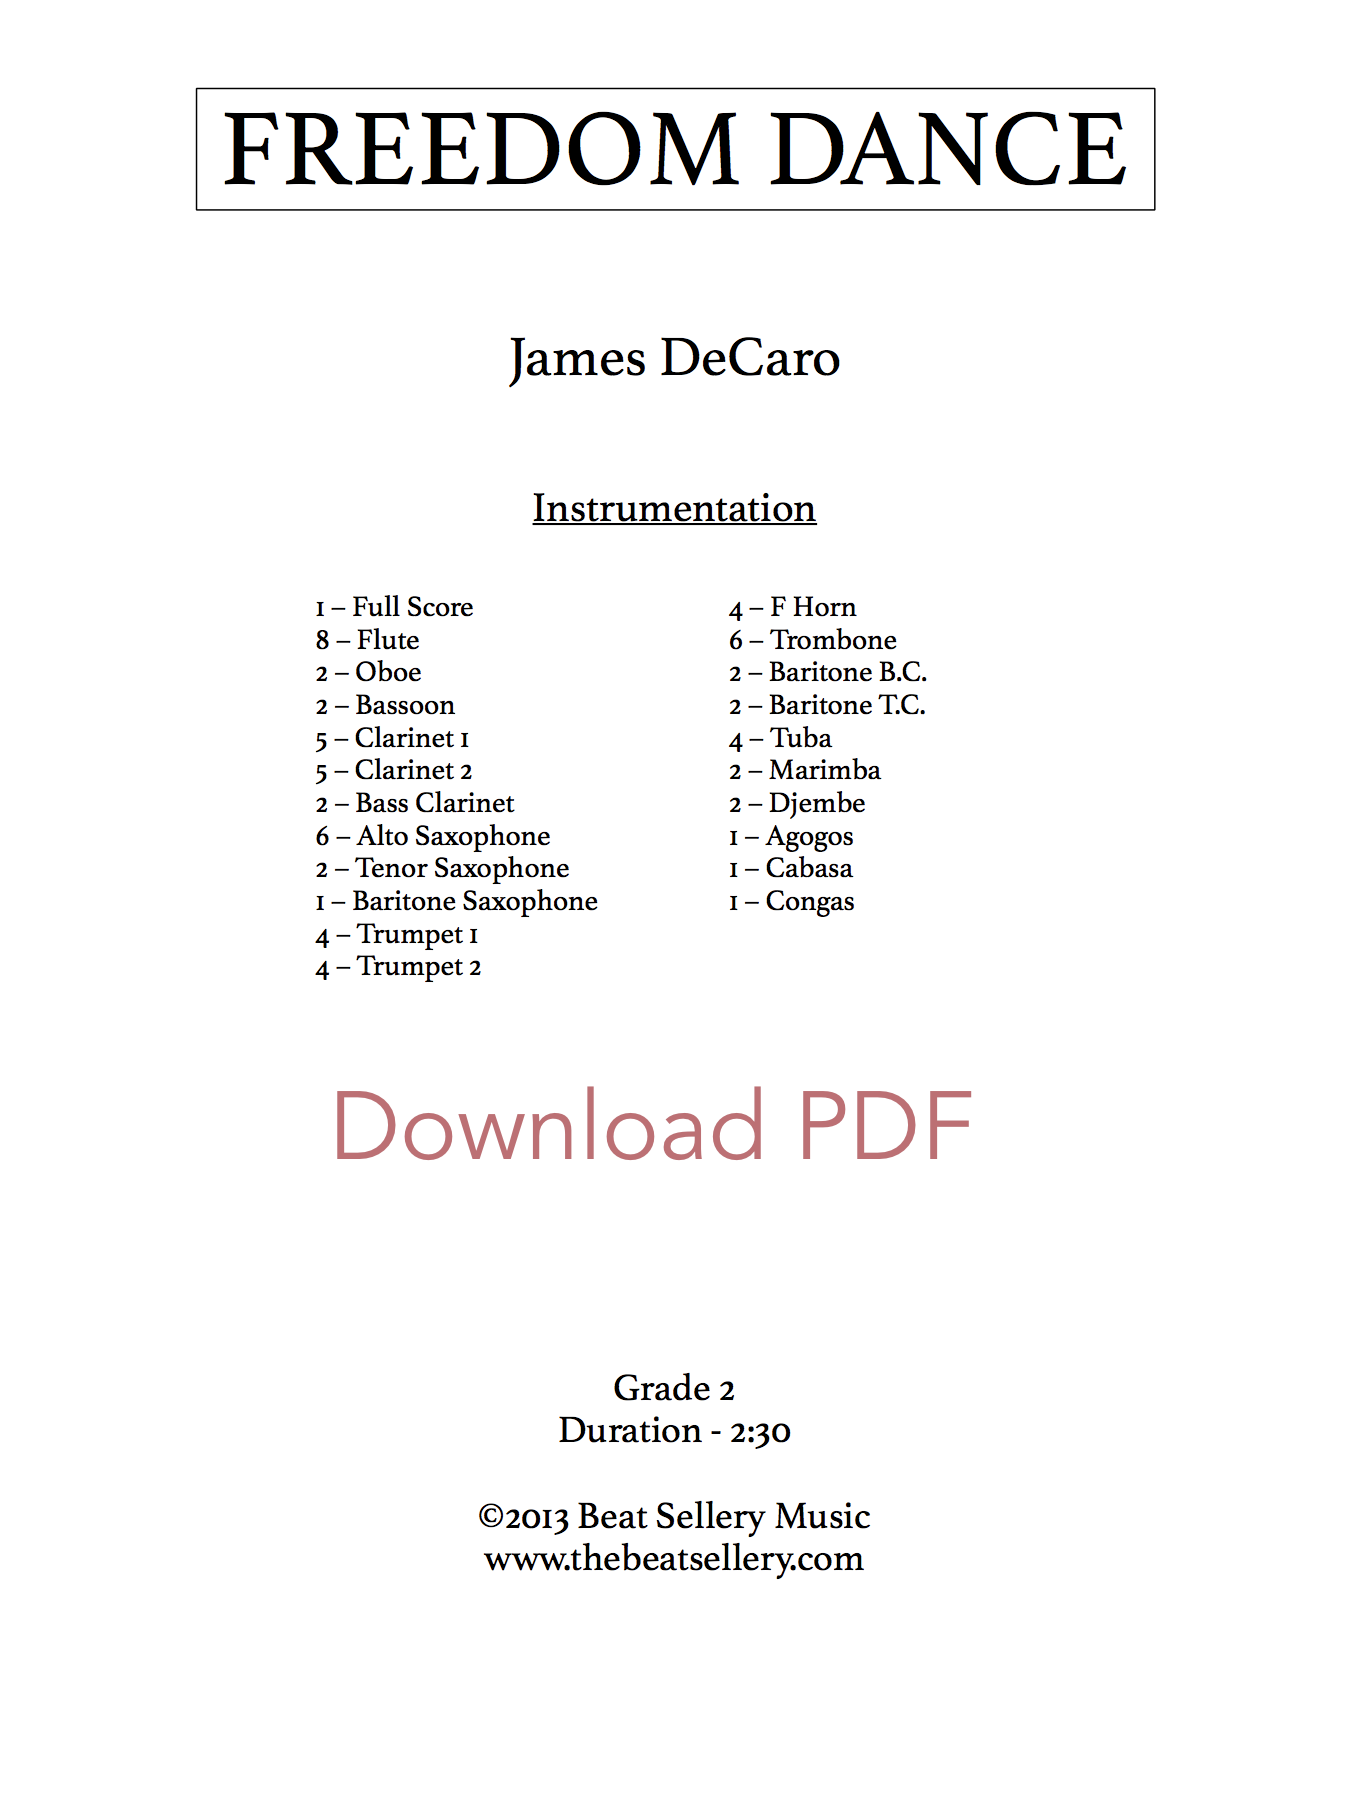 Freedom Dance - Download PDF